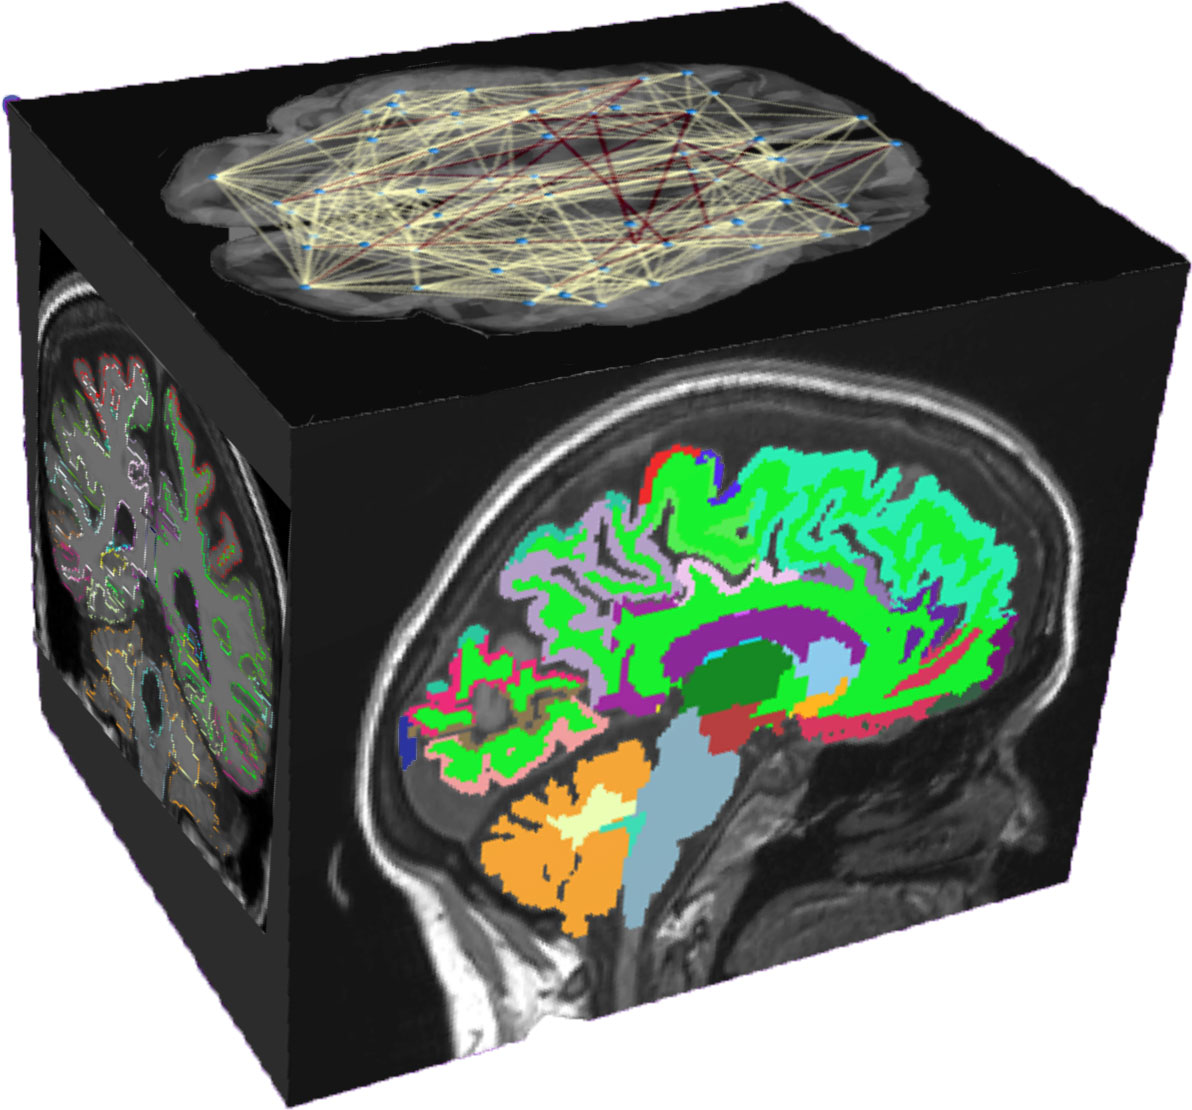 Cube facets with different brain images